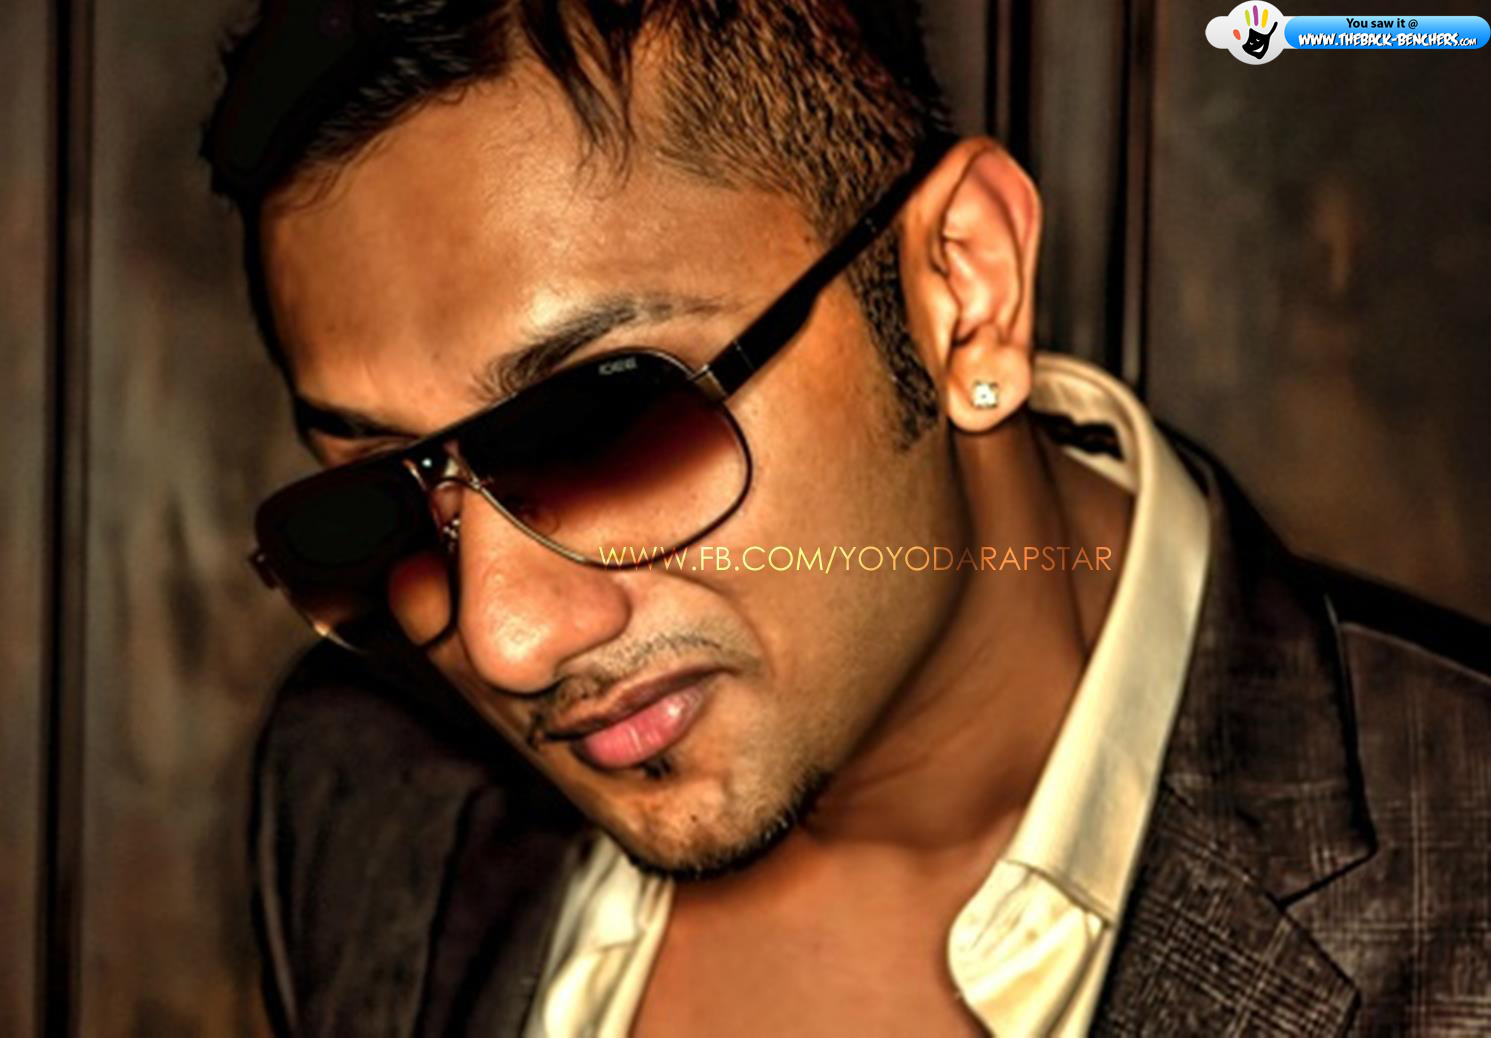 Russ bekeh honey singh new dirty song october 2012 18 + foul.